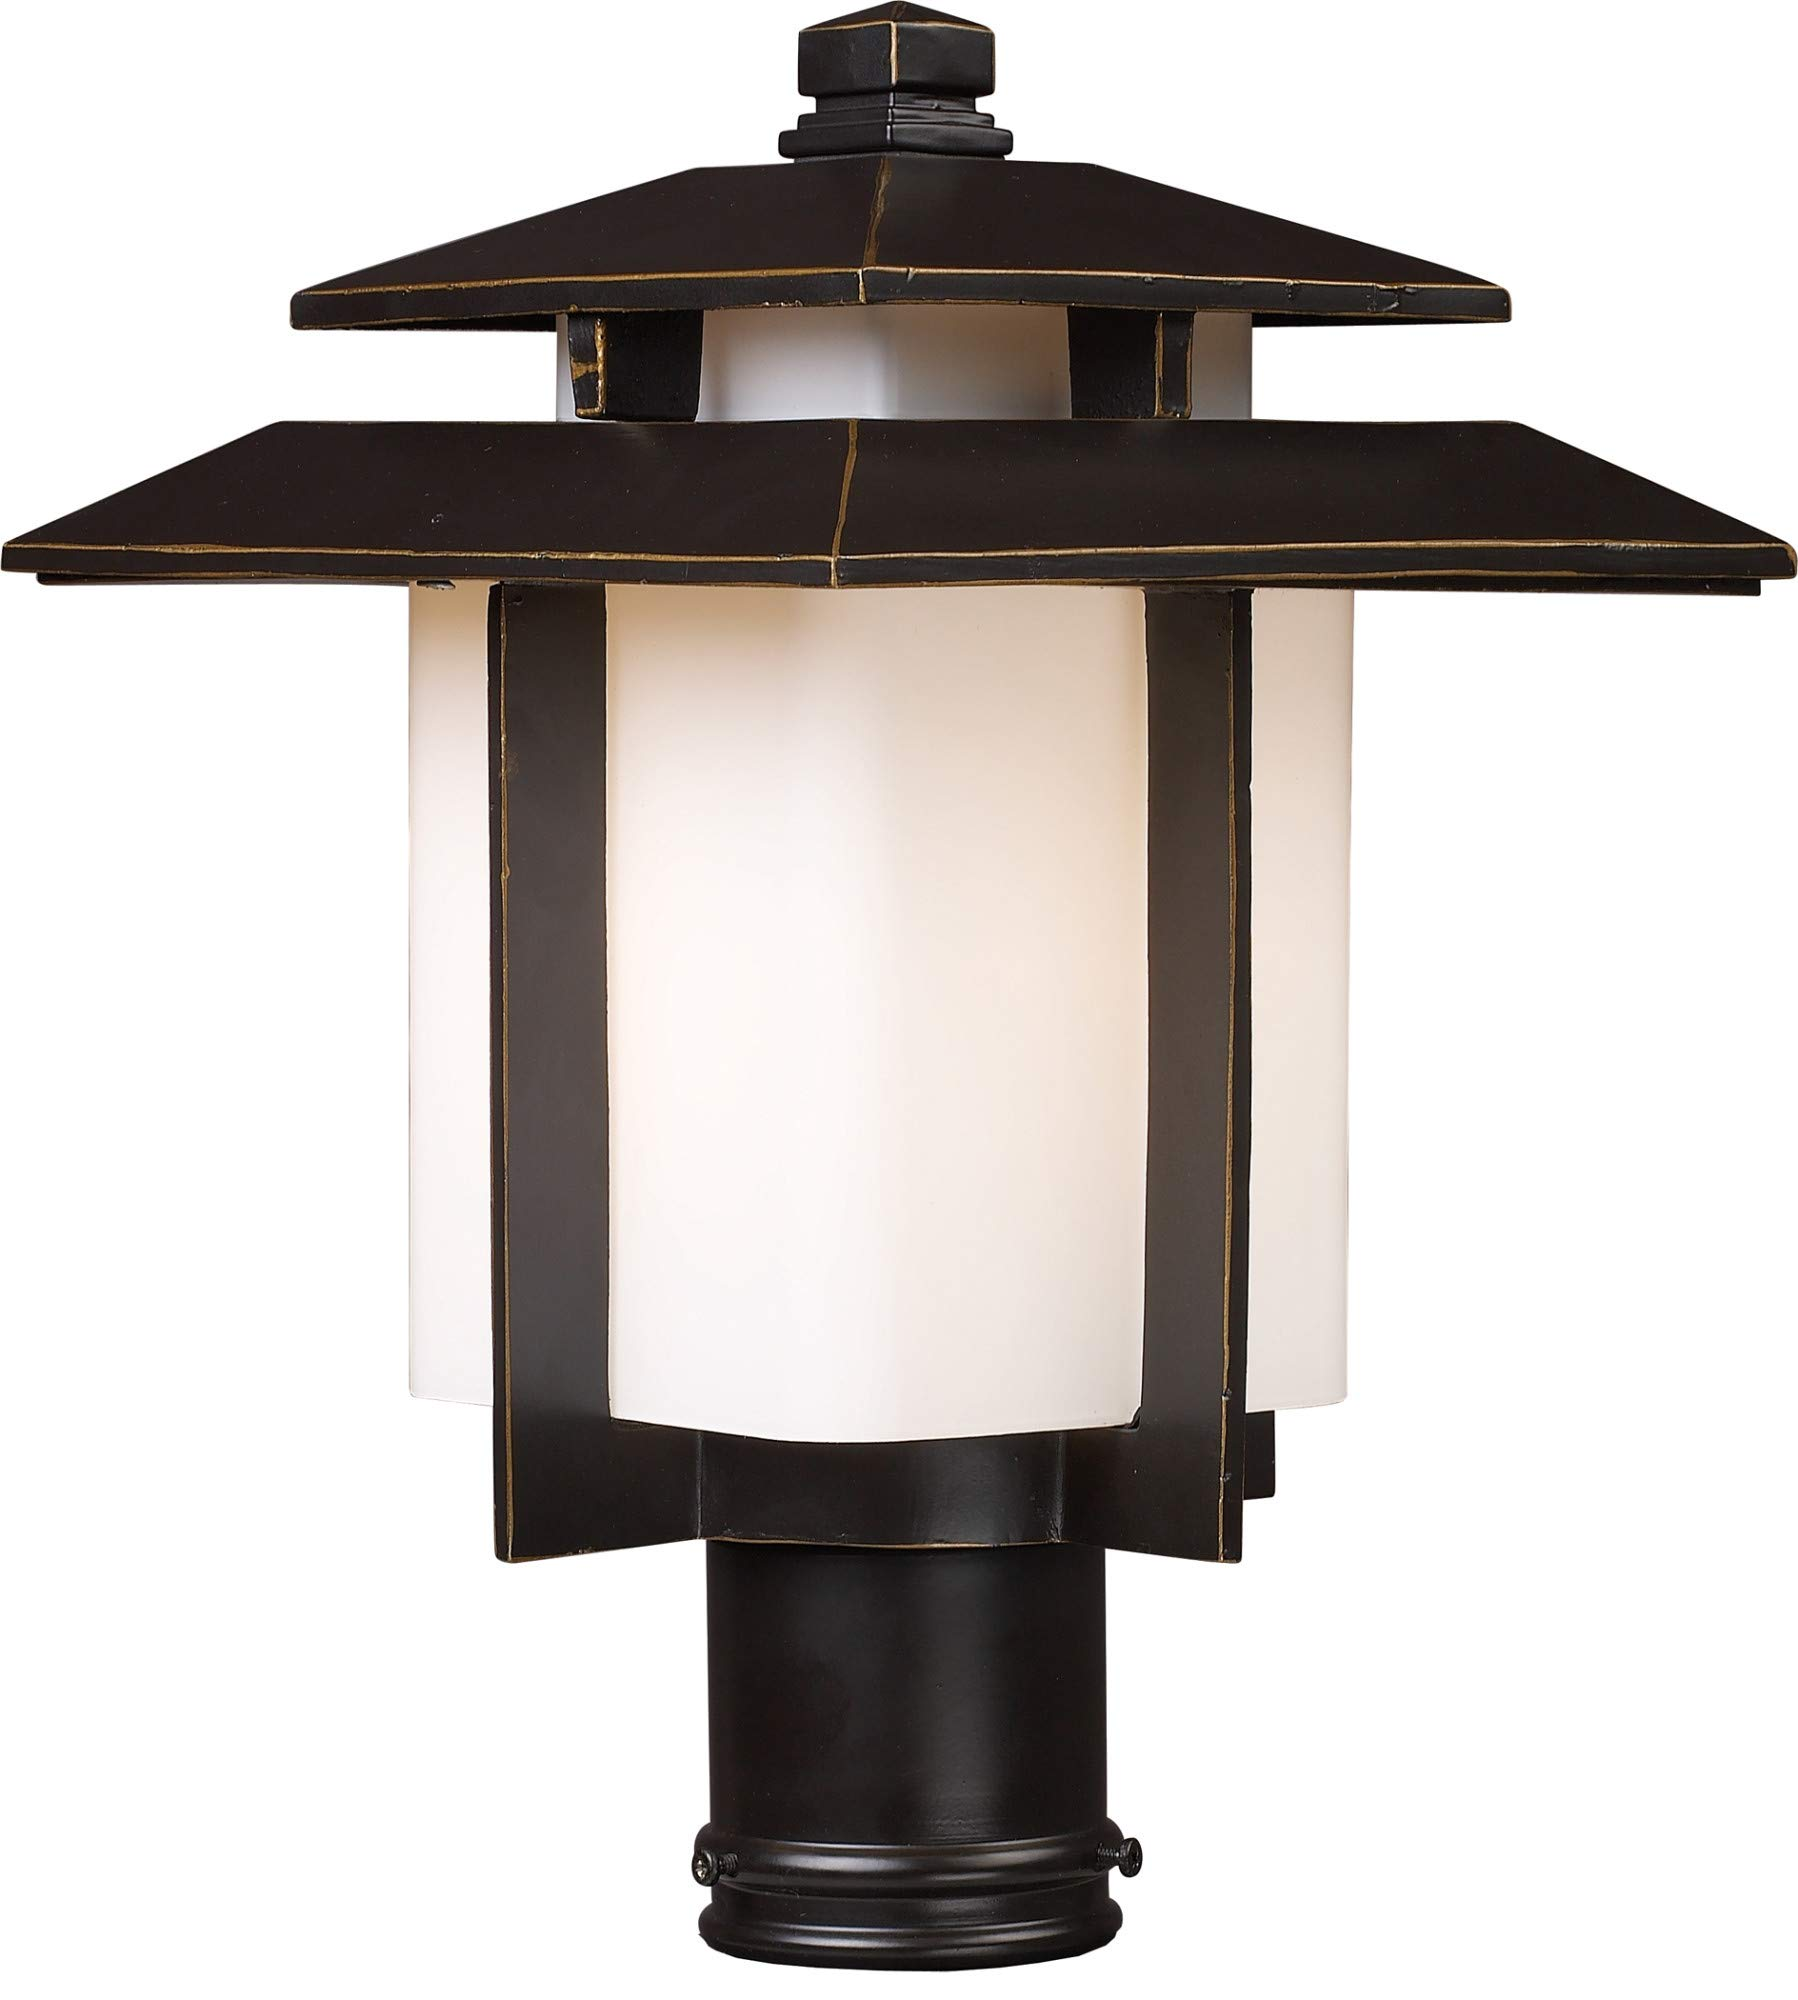 ELK Lighting 42173/1 Kanso 1 Light Outdoor Post Light, Hazelnut Bronze